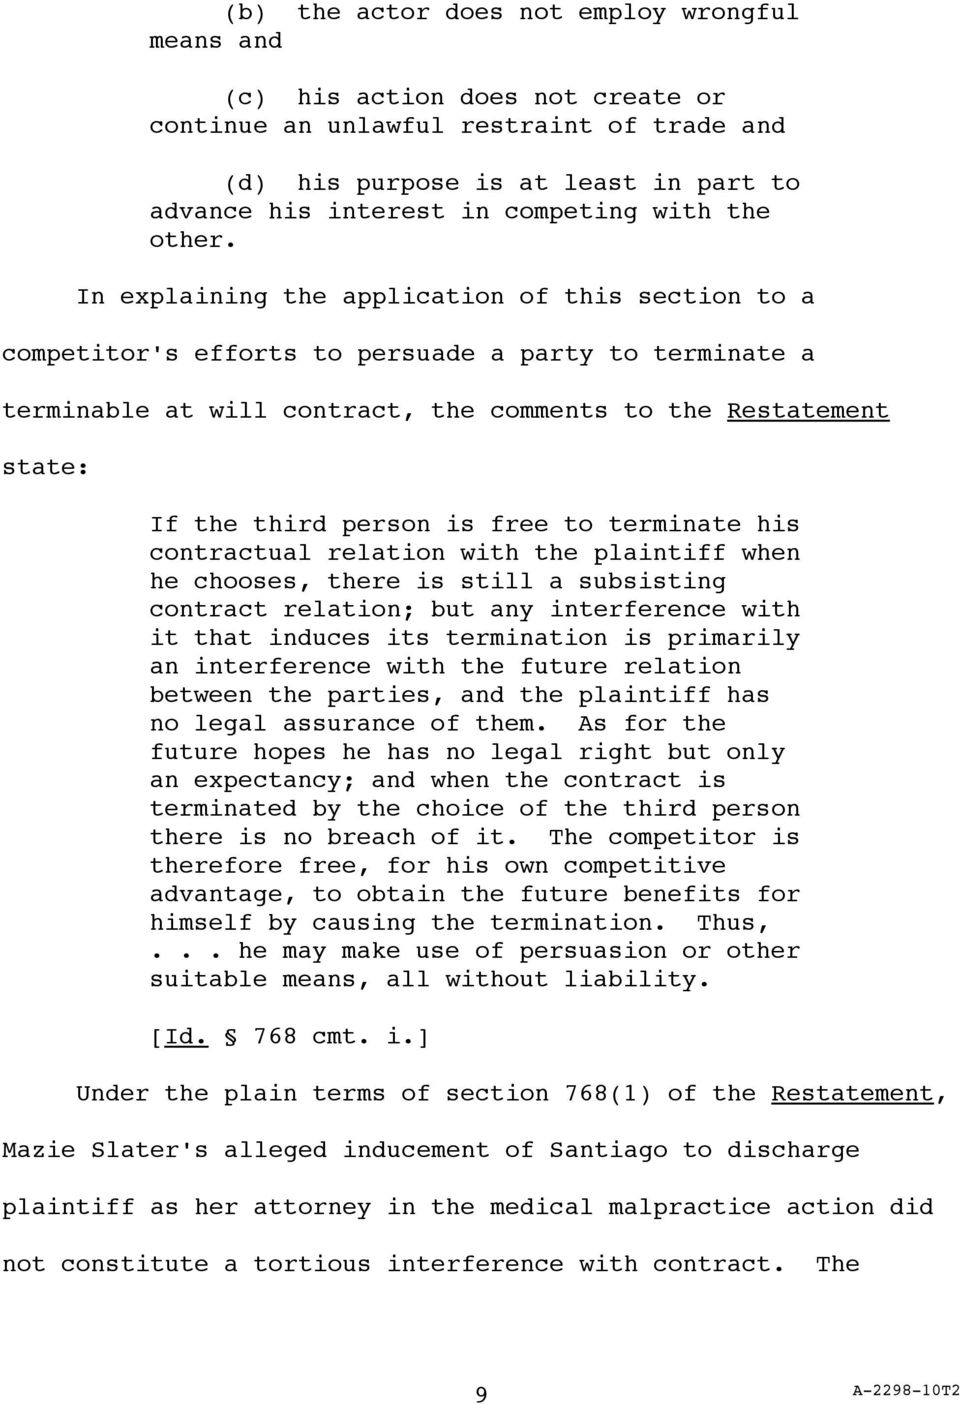 In explaining the application of this section to a competitor's efforts to persuade a party to terminate a terminable at will contract, the comments to the Restatement state: If the third person is